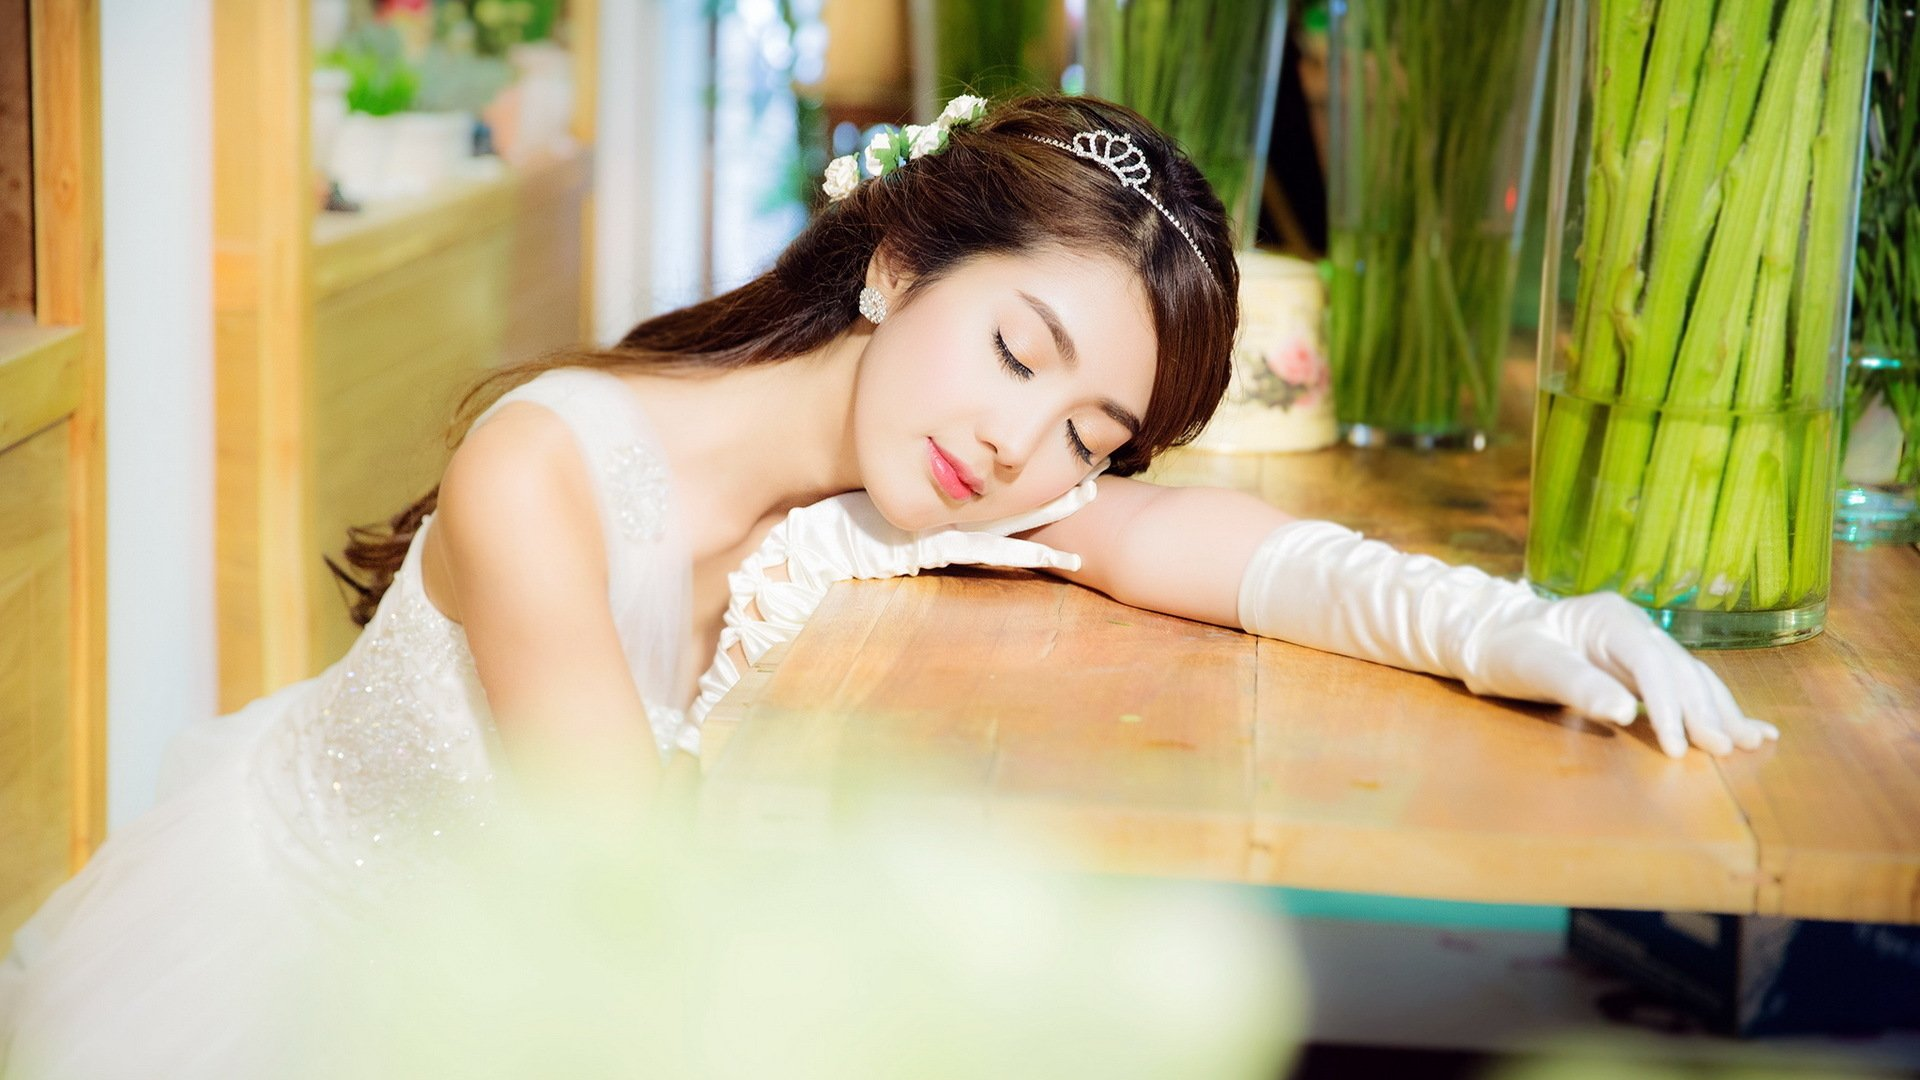 HQ Linh Napie Wallpapers | File 230.45Kb